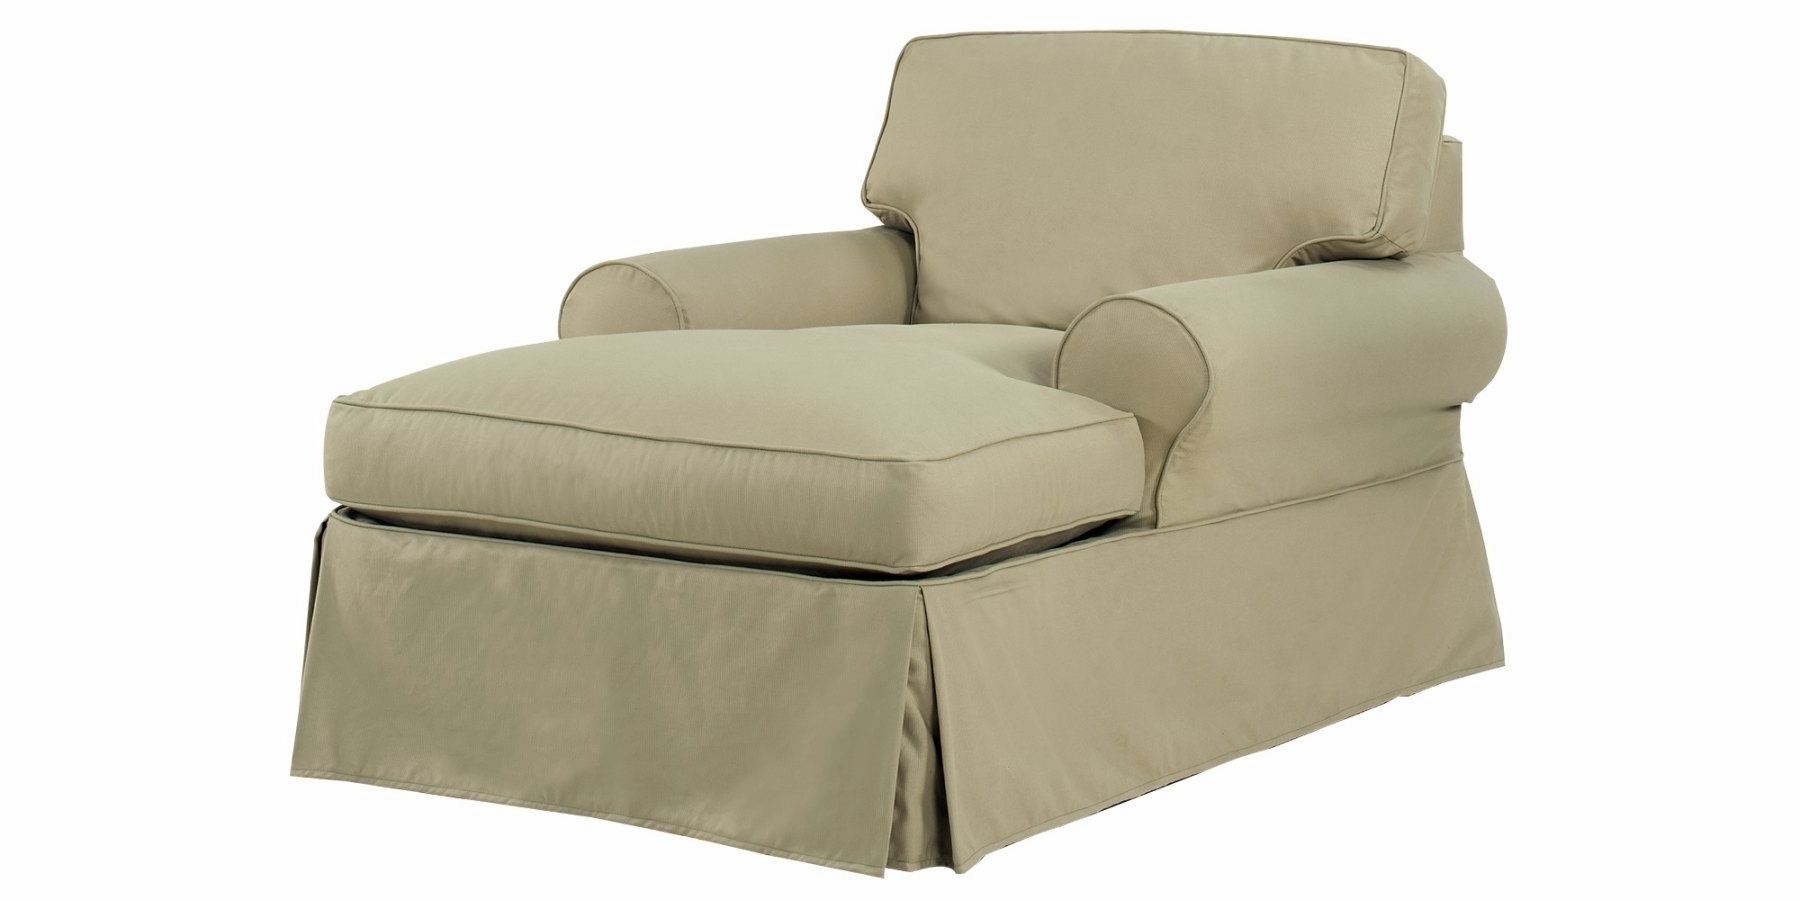 Most Recent Chaise Lounge Chairs With Two Arms For Chaise Lounge Chairs Two Arms • Lounge Chairs Ideas (View 3 of 15)